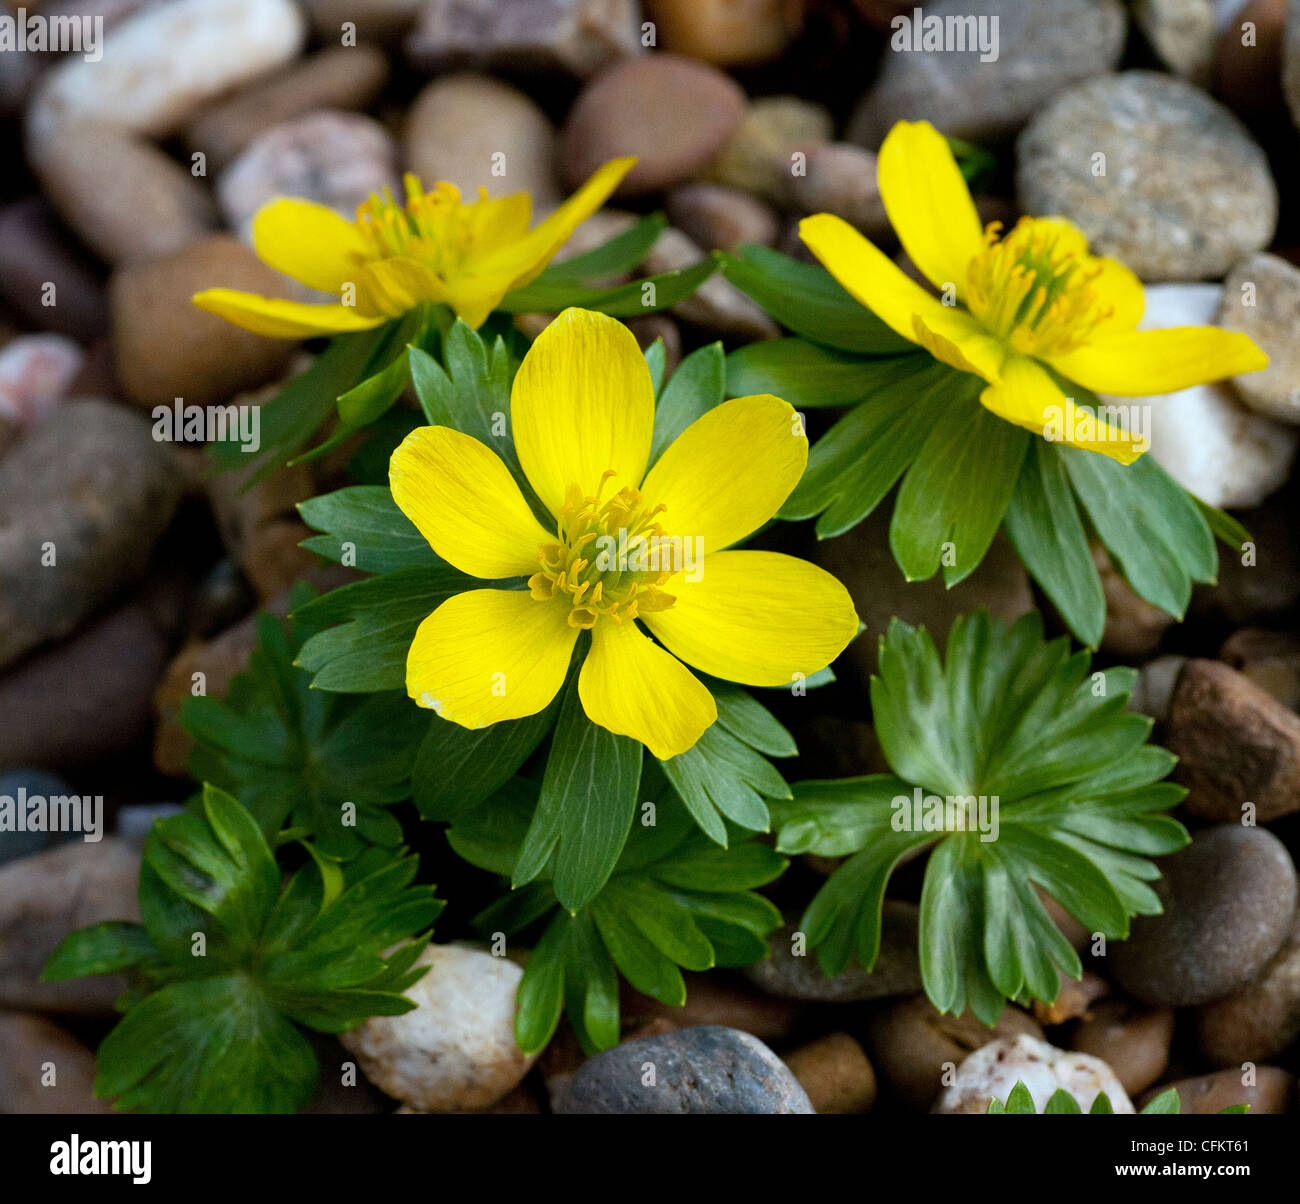 The Bright Yellow Flowers Of Winter Flowering Aconite In A Garden On